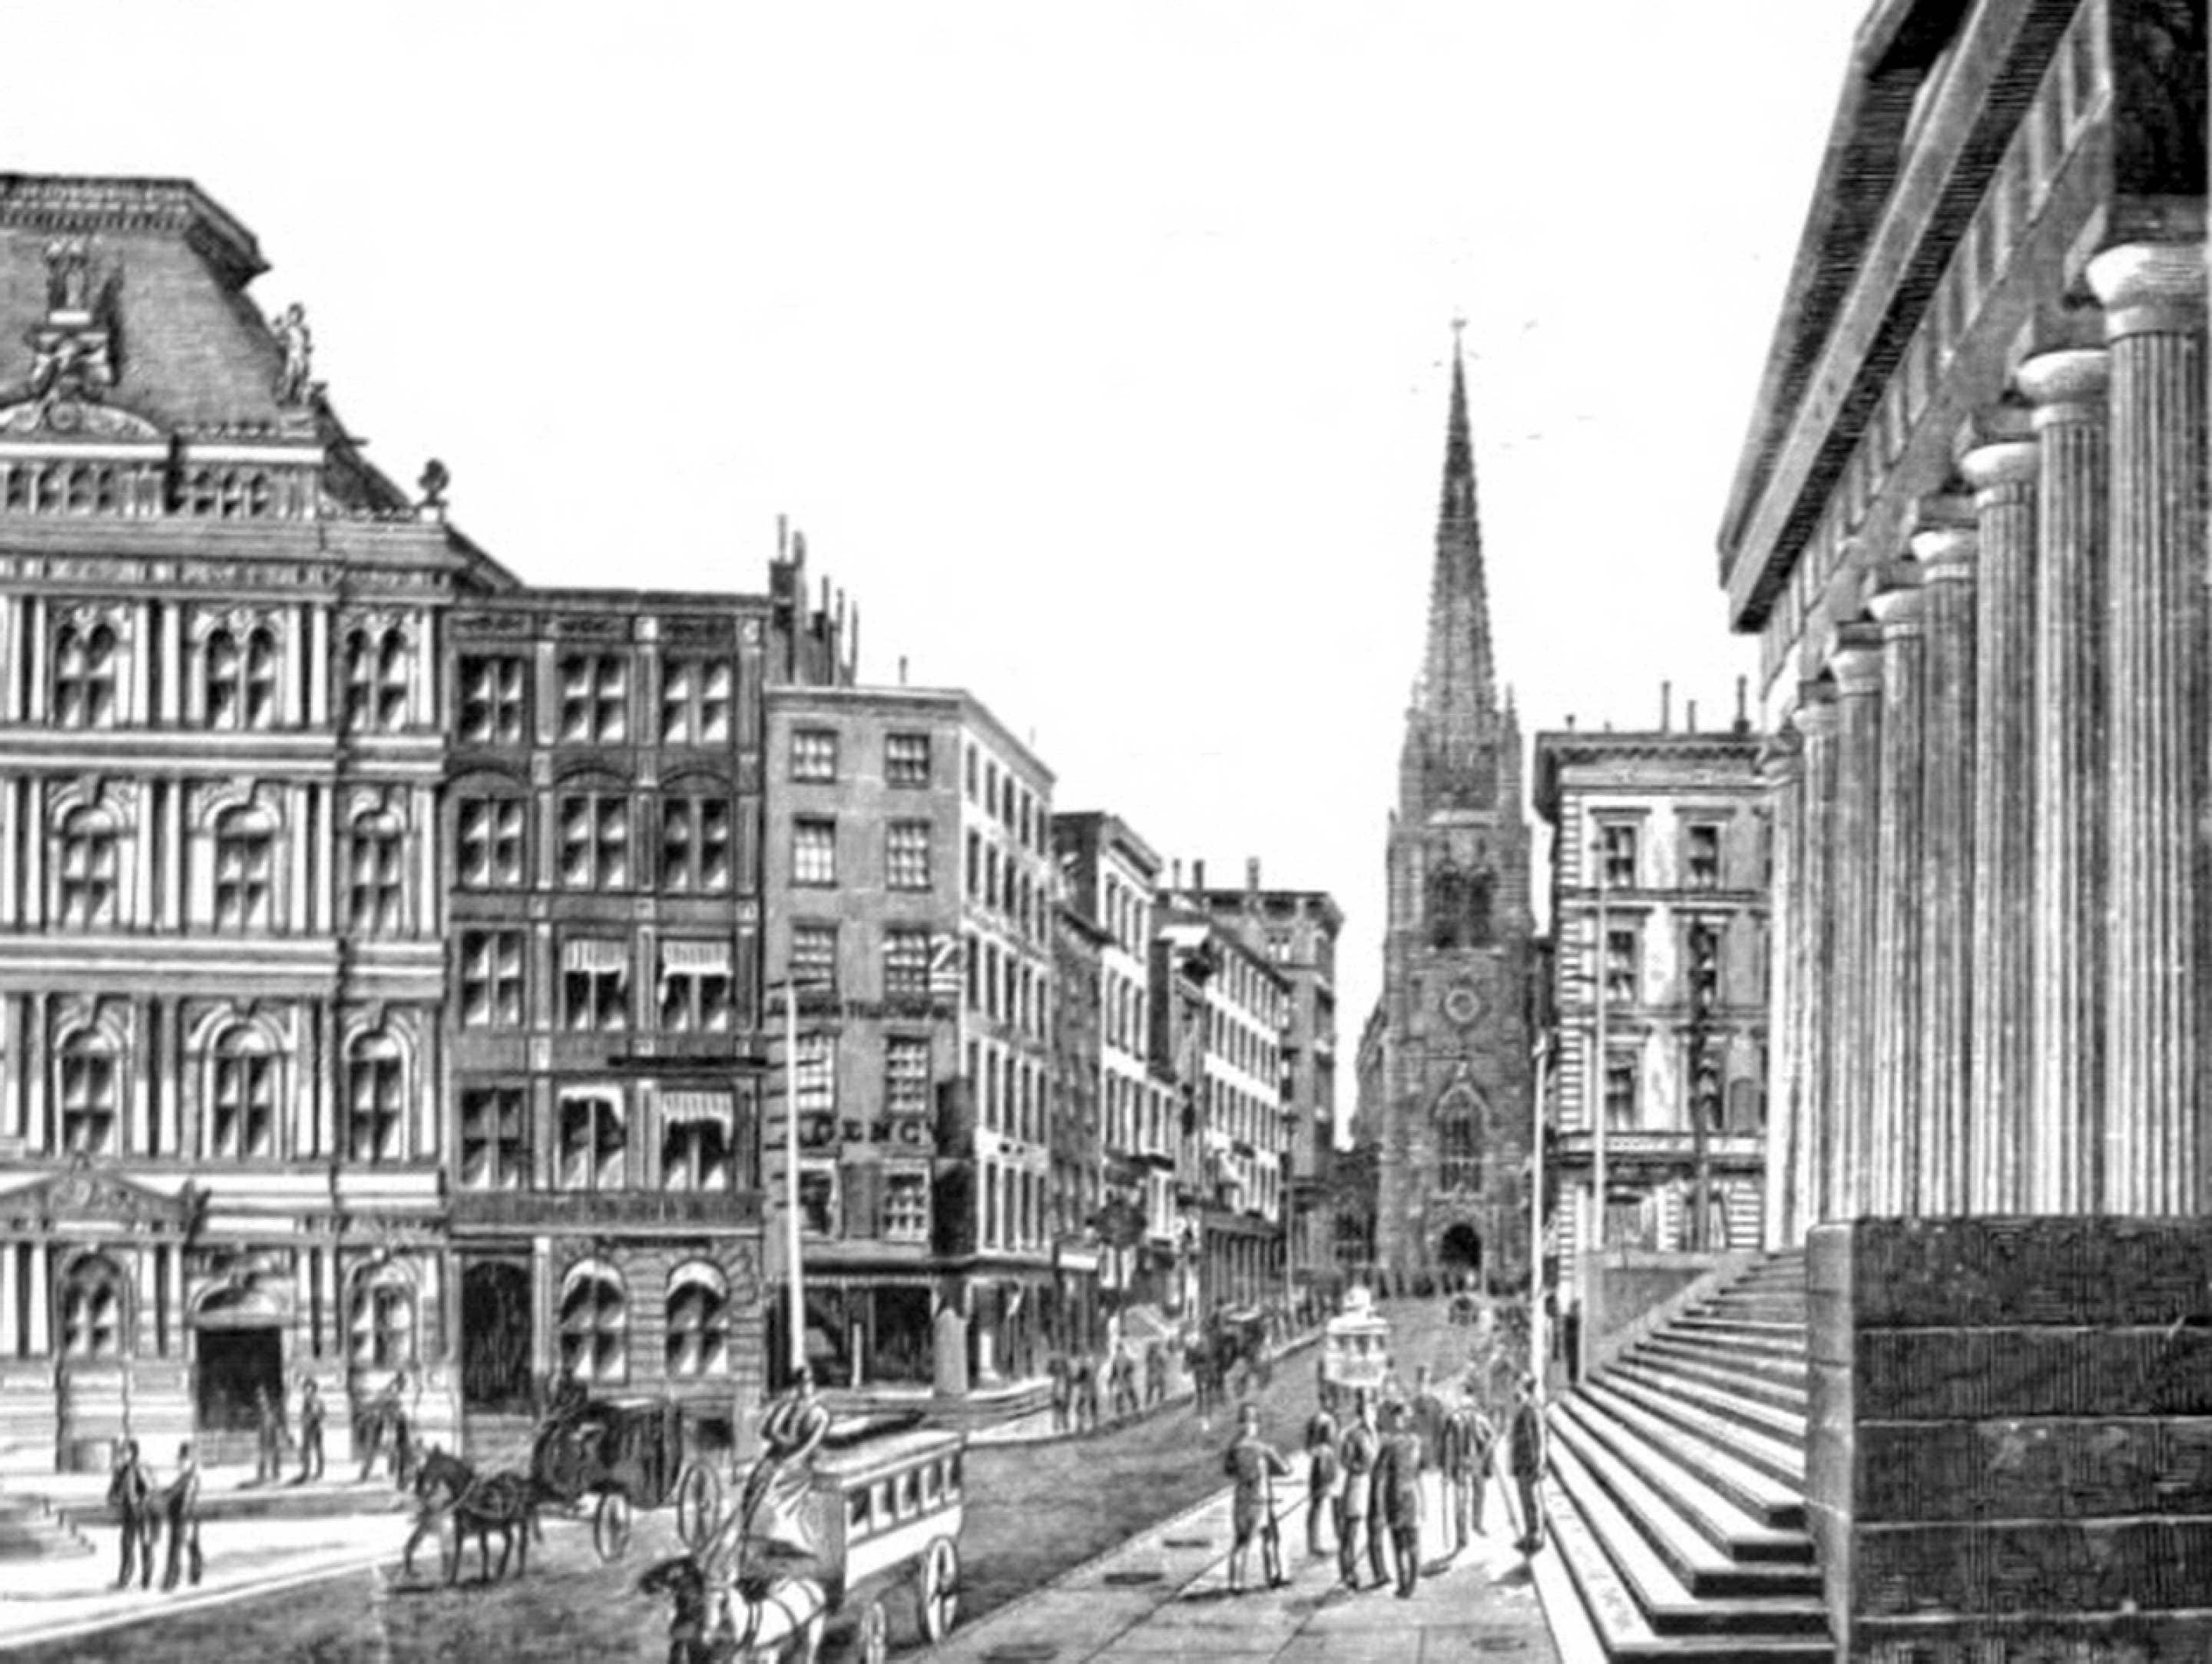 Wall Street in 1880s. Image: Wikimedia Commons.